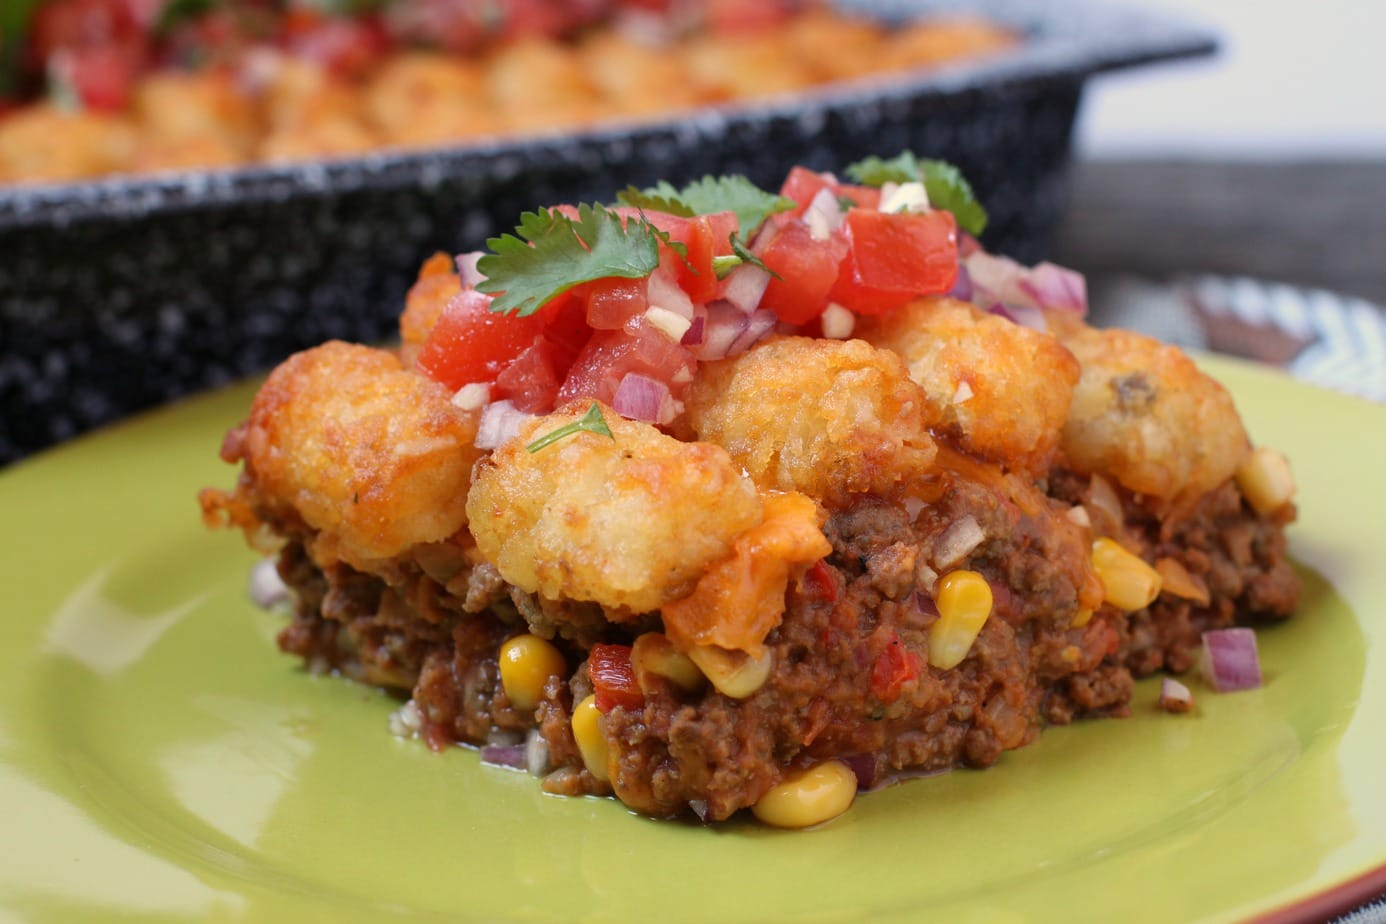 Everyone's favourite golden potato nuggets top a cheesy, comforting taco casserole made with ground beef, refried beans and veggies. #casserole #onepan #tatertots #tacospices #dinner #comfortfood